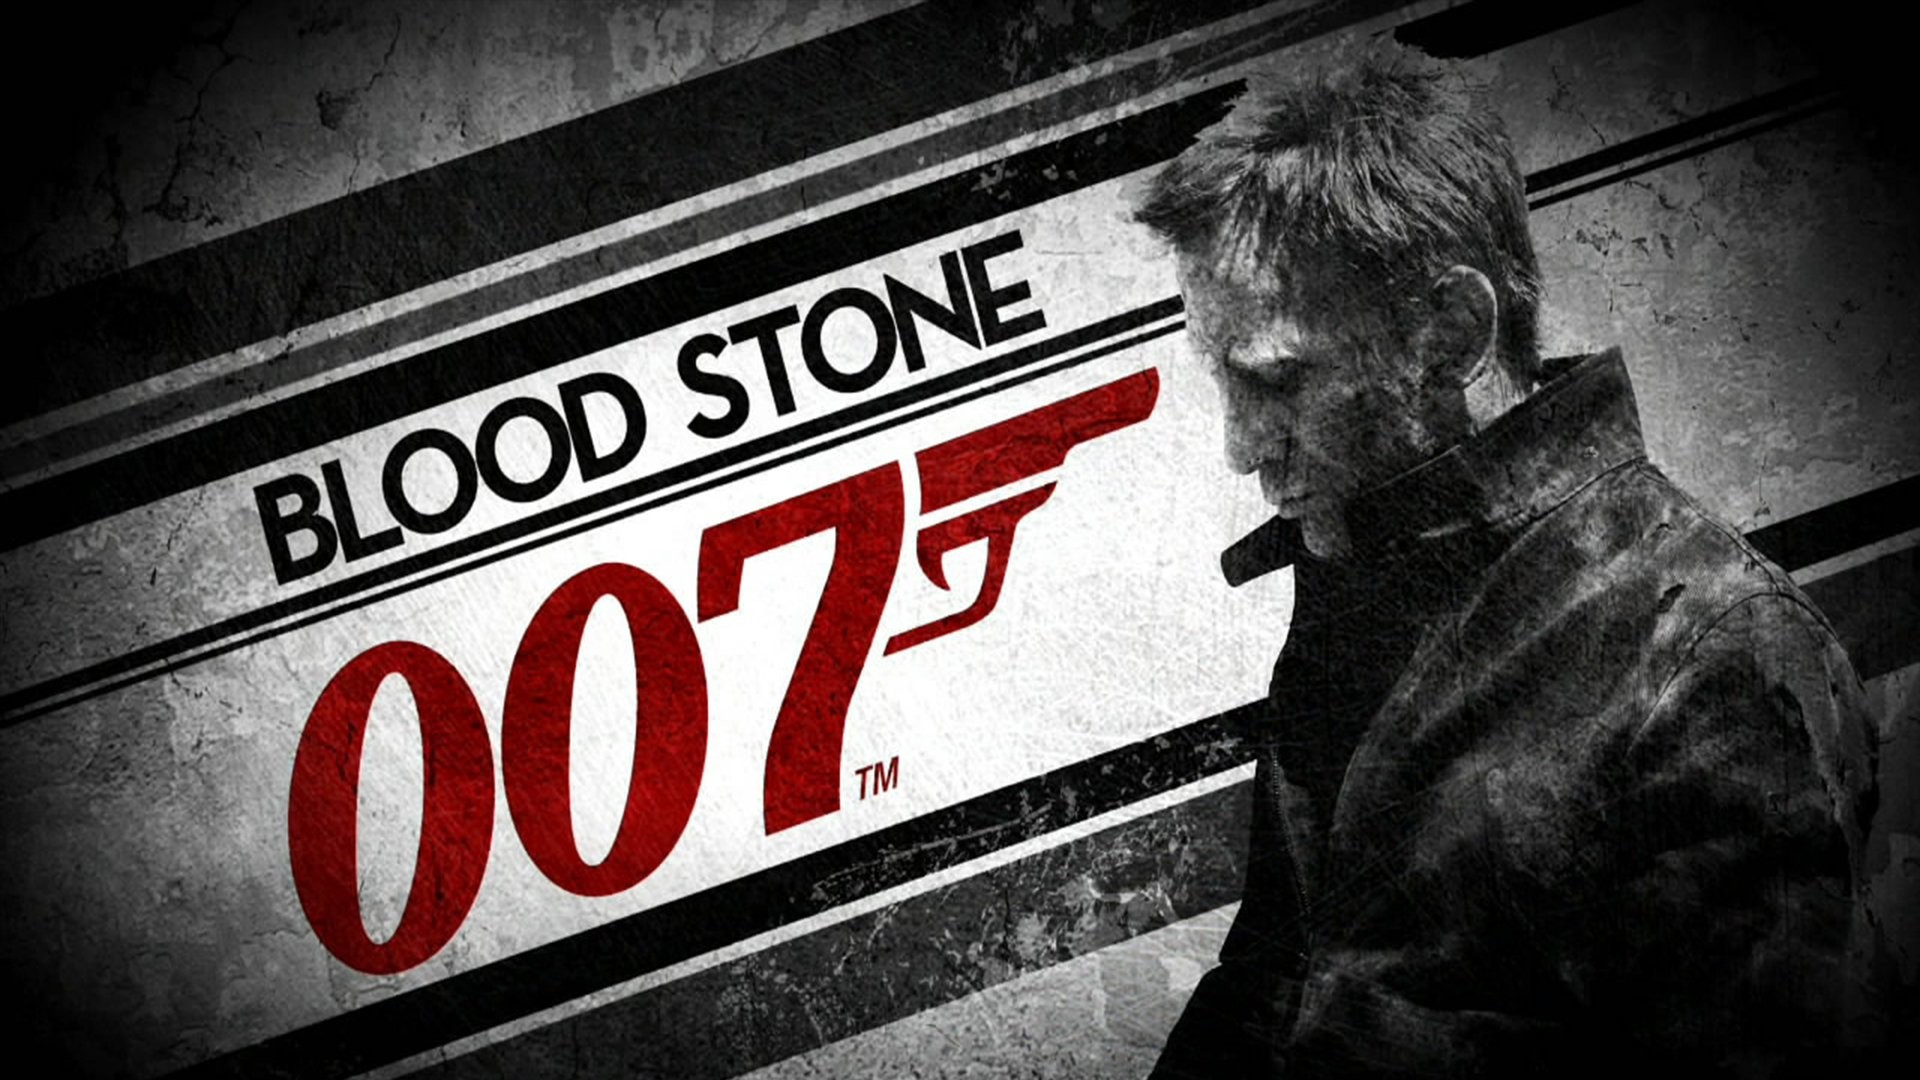 James Bond 007 Wallpaper ·① WallpaperTag